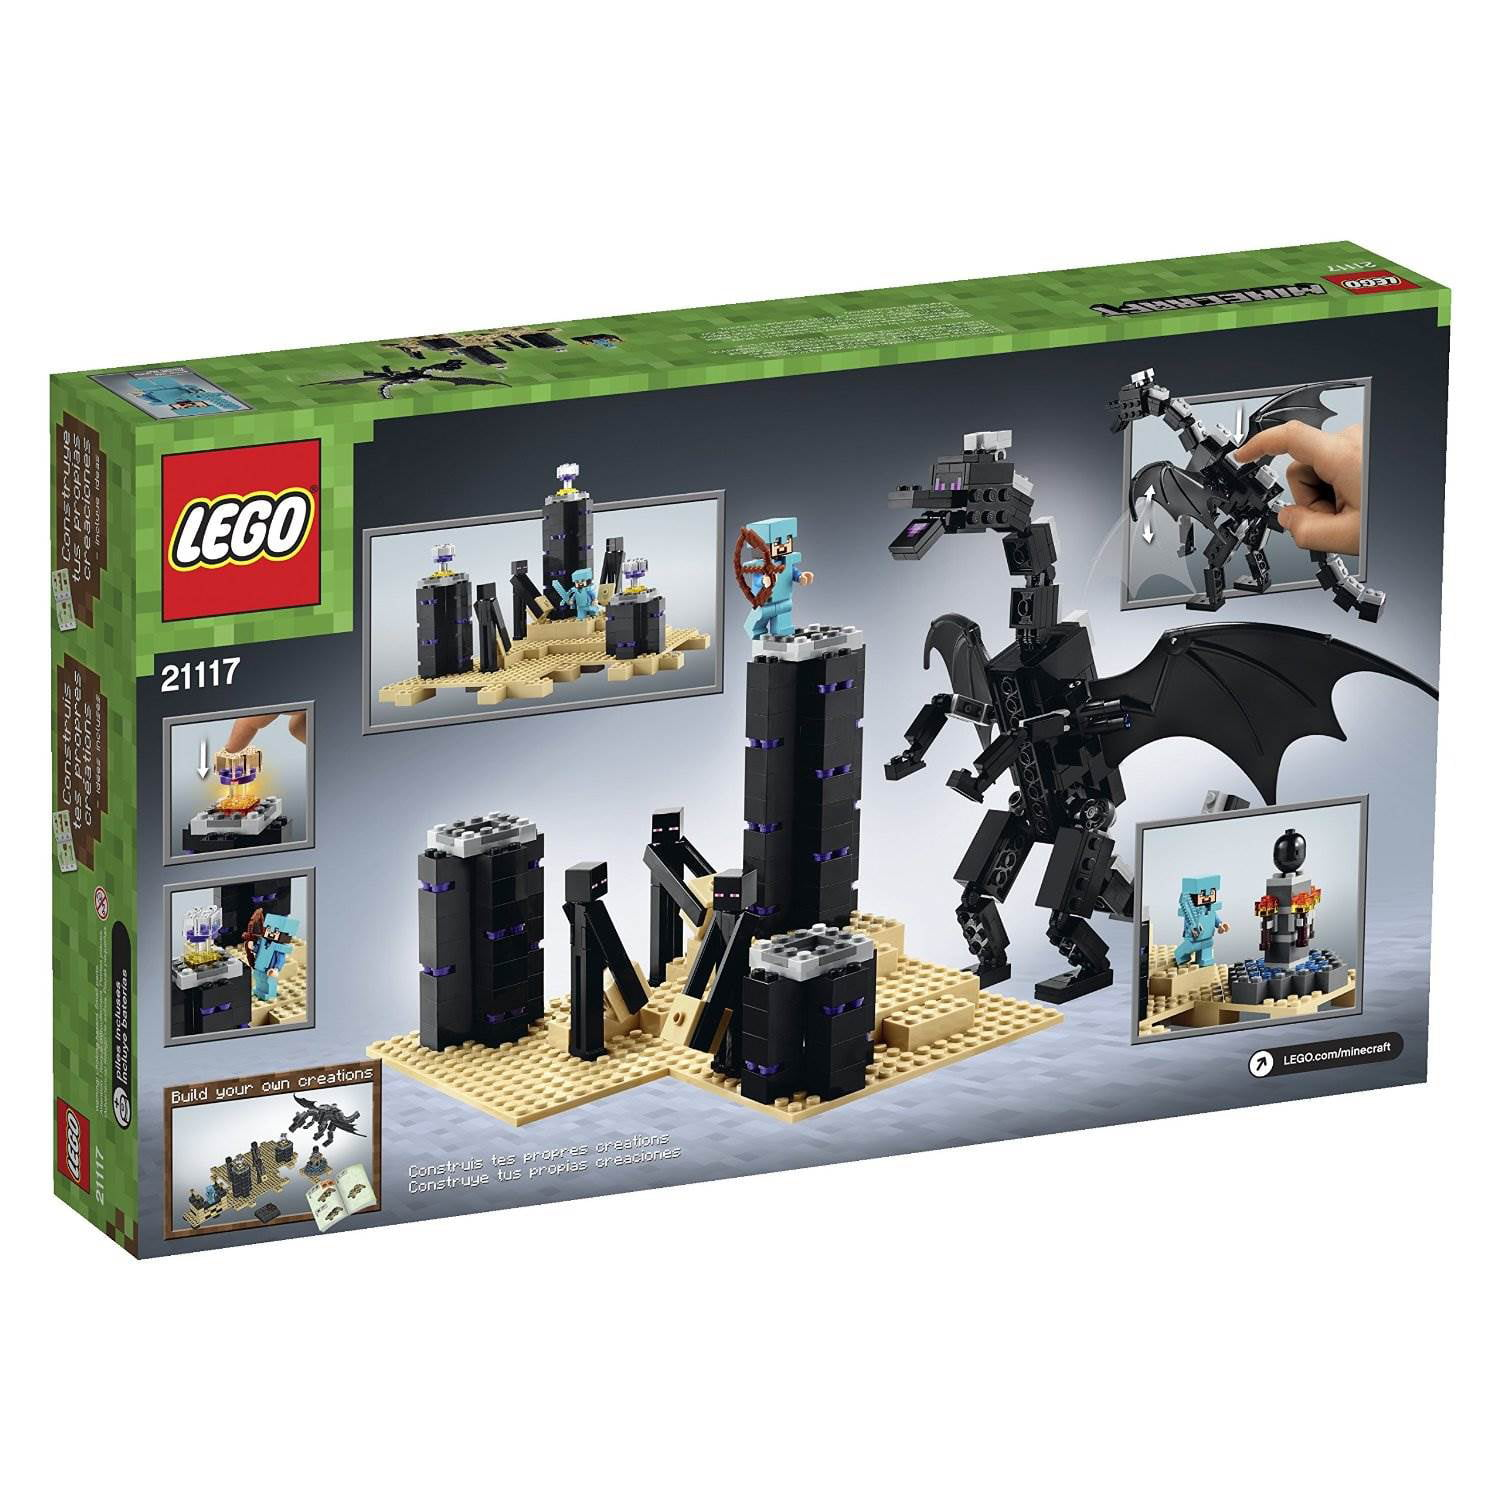 Lego Minecraft The Ender Dragon Walmart Com Walmart Com Craft an armor stand called dragon 2. lego minecraft the ender dragon